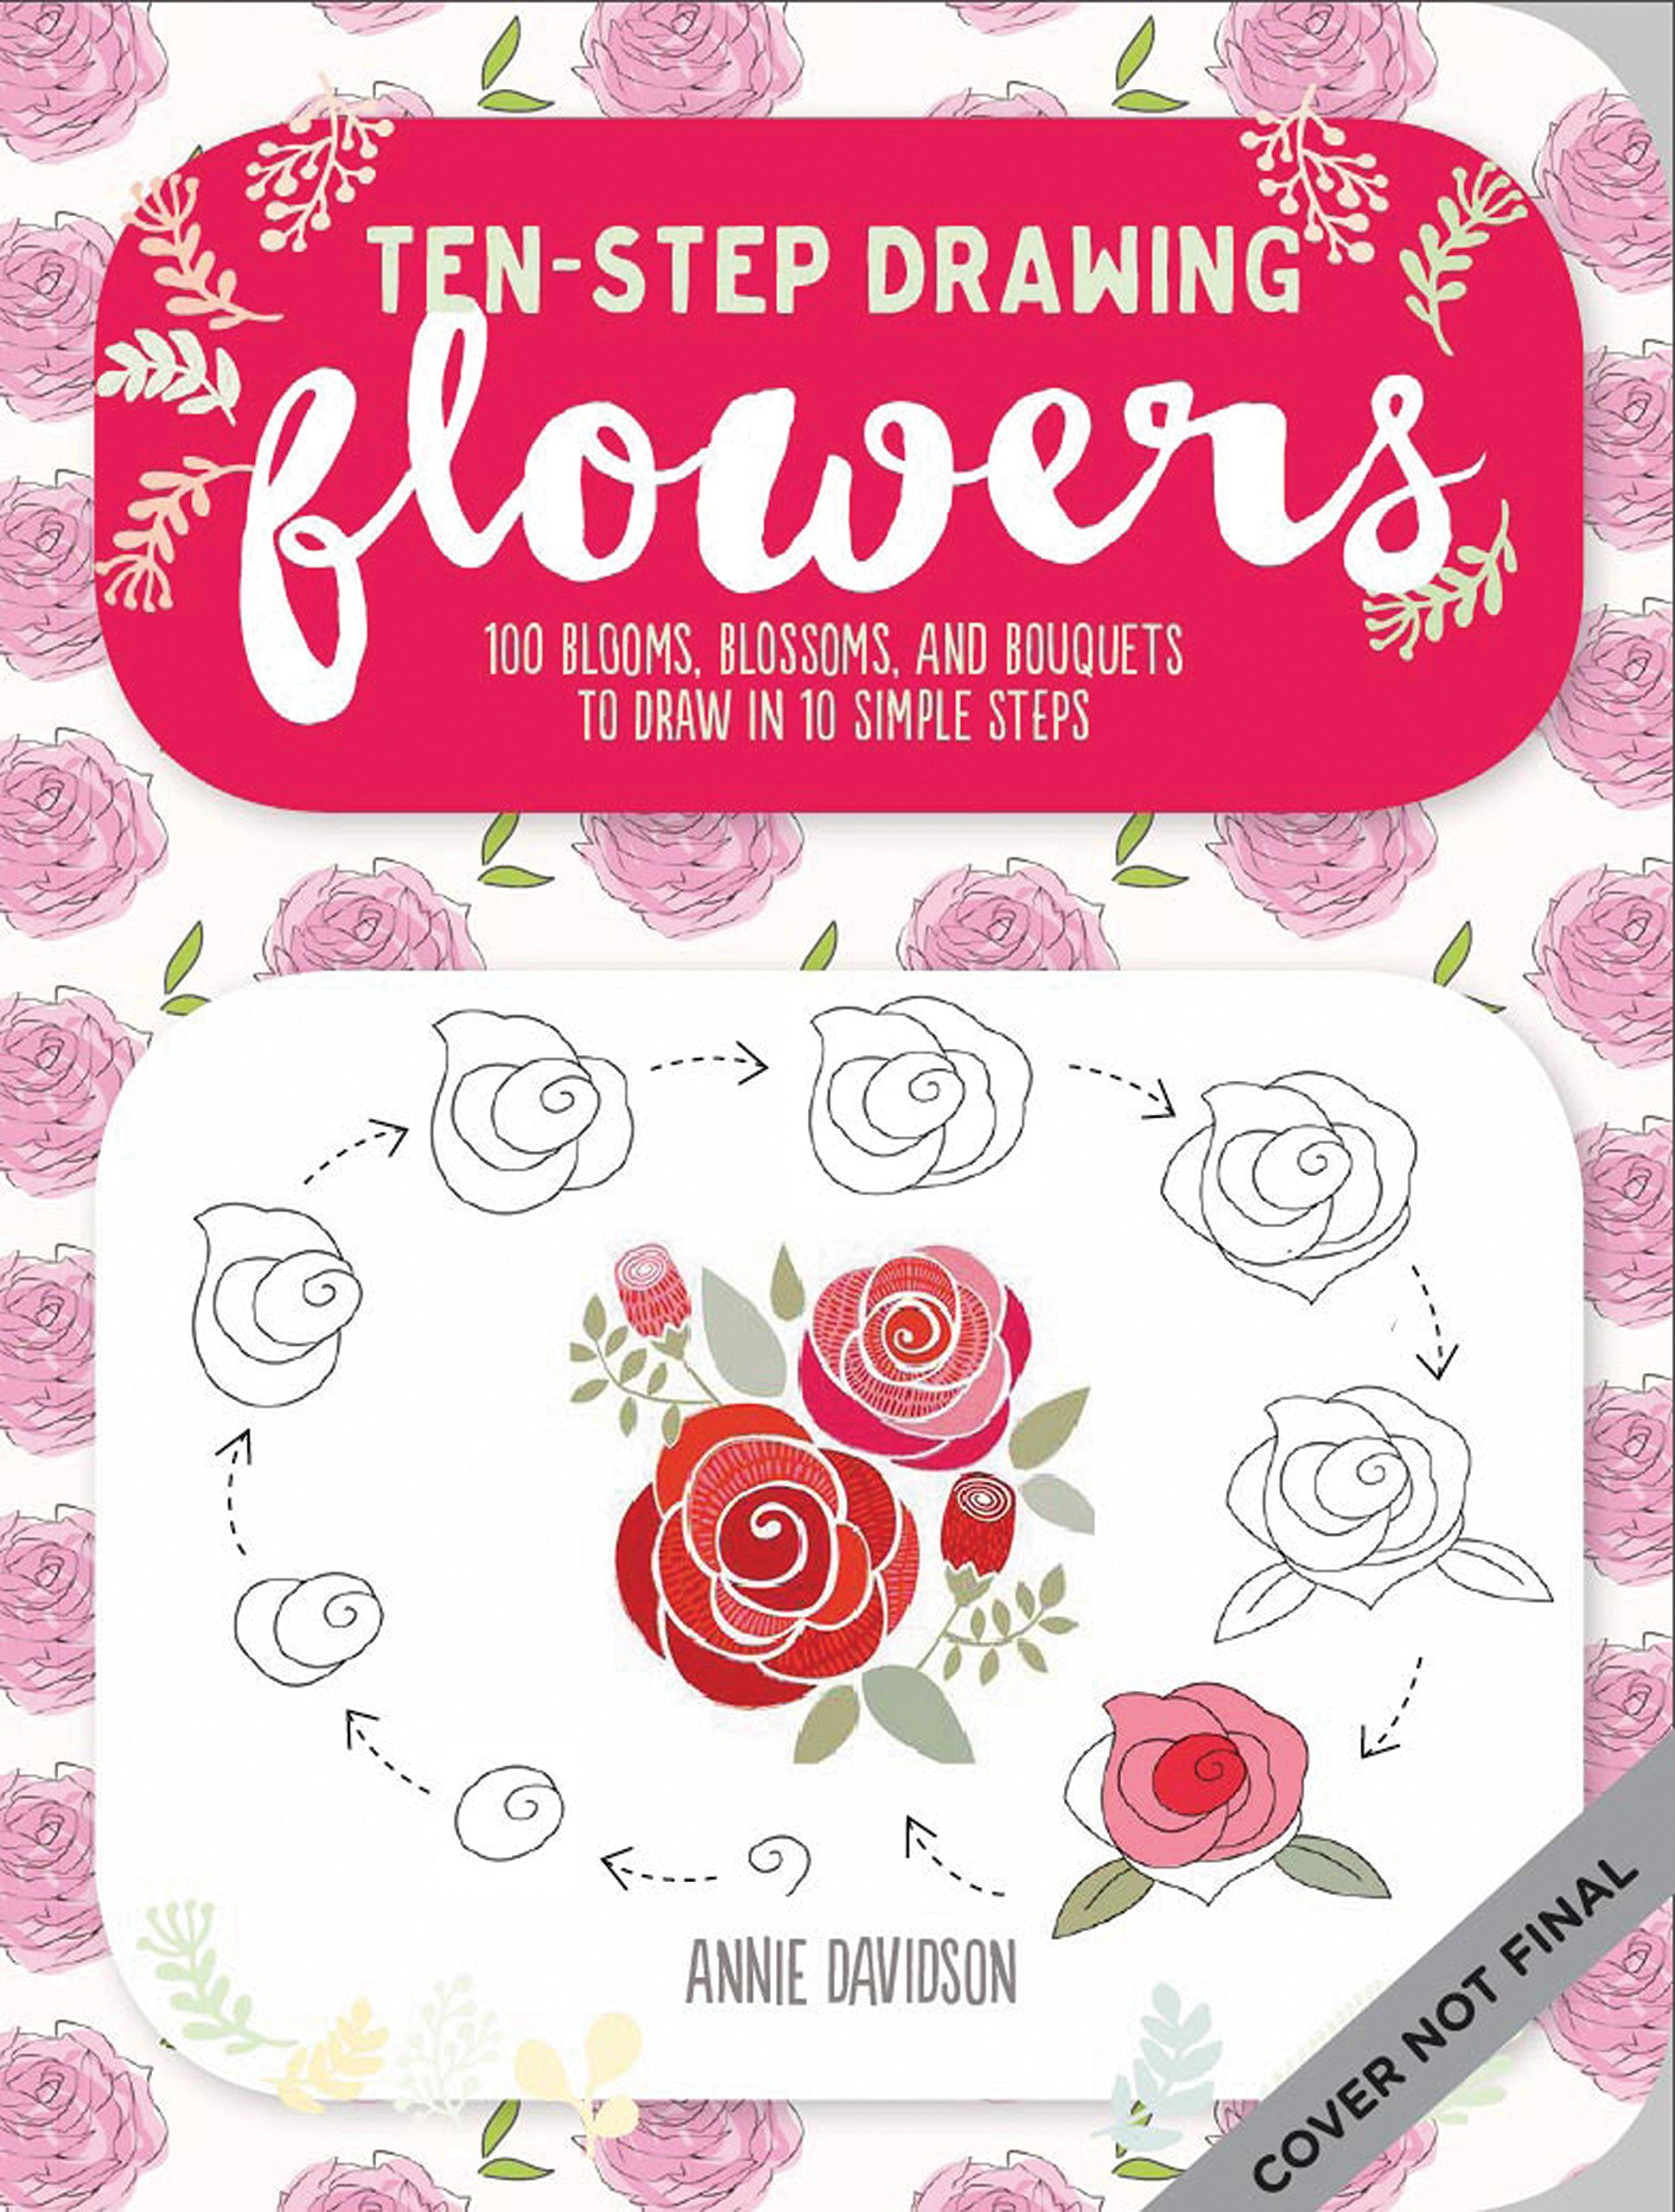 Ten step drawing flowers learn to draw 75 flowers in ten easy steps paperback august 7 2018